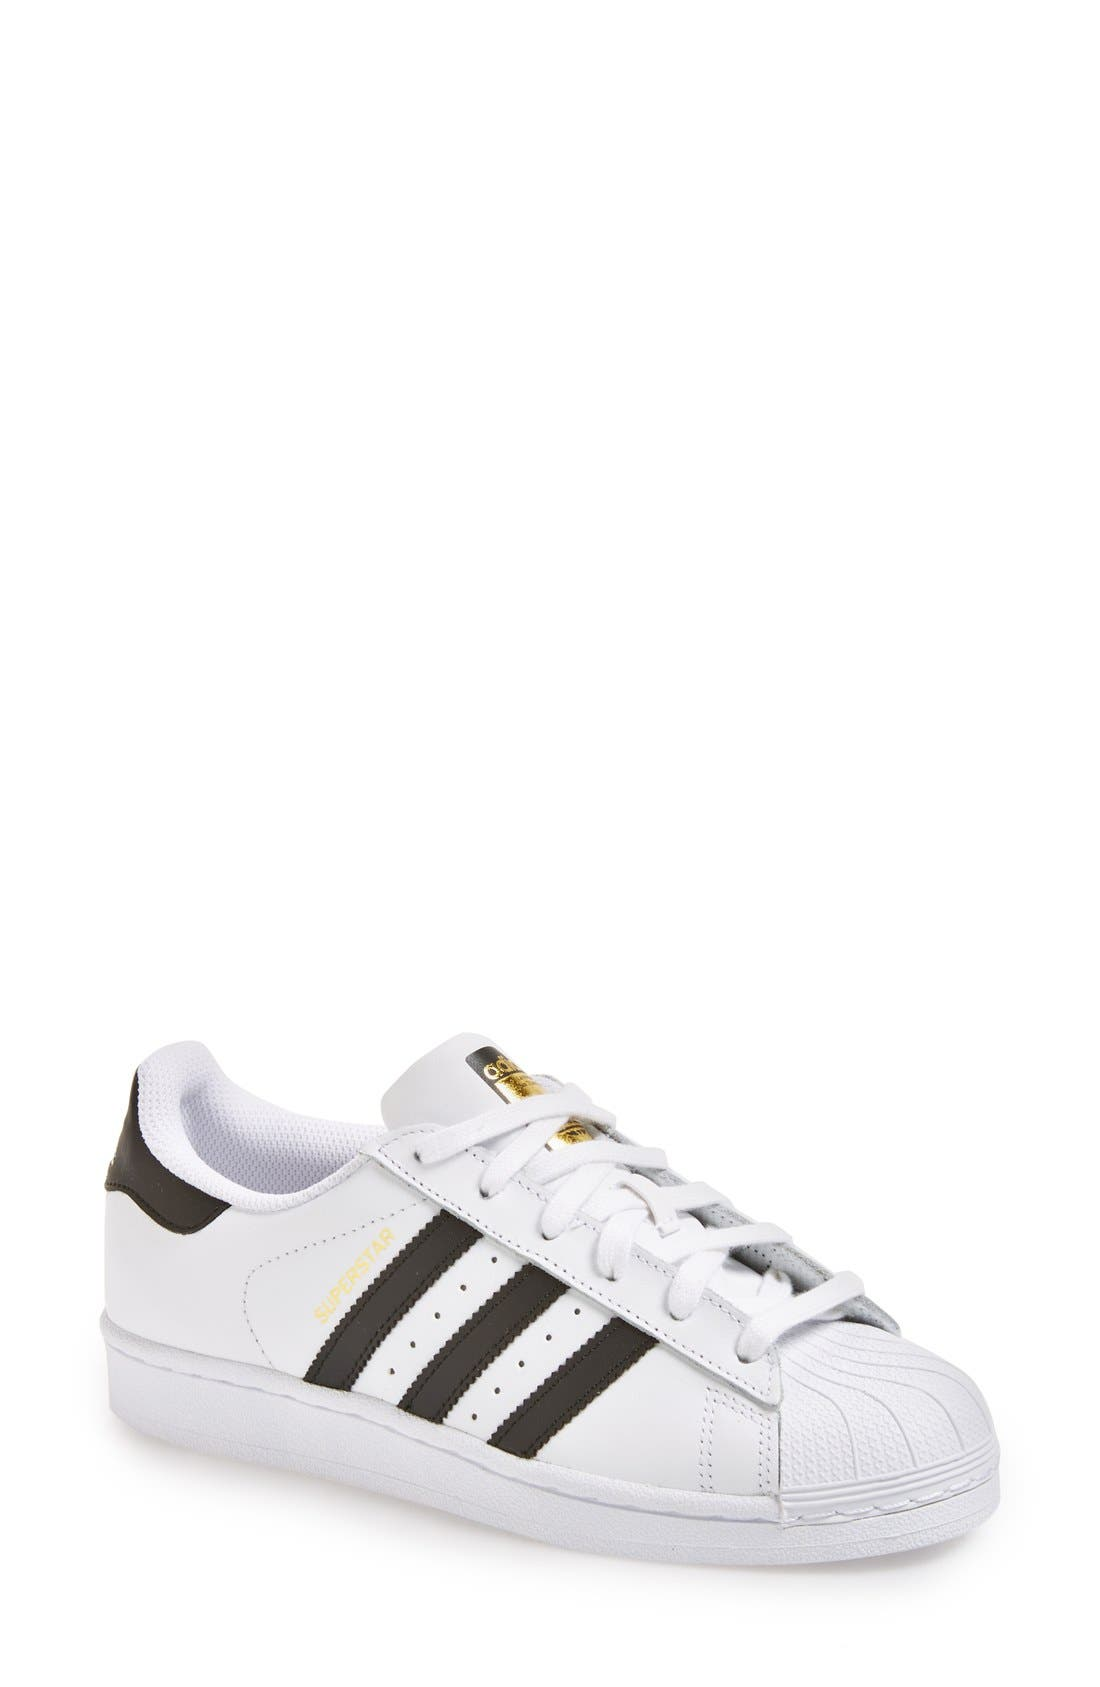 Alternate Image 1 Selected - adidas Superstar Sneaker